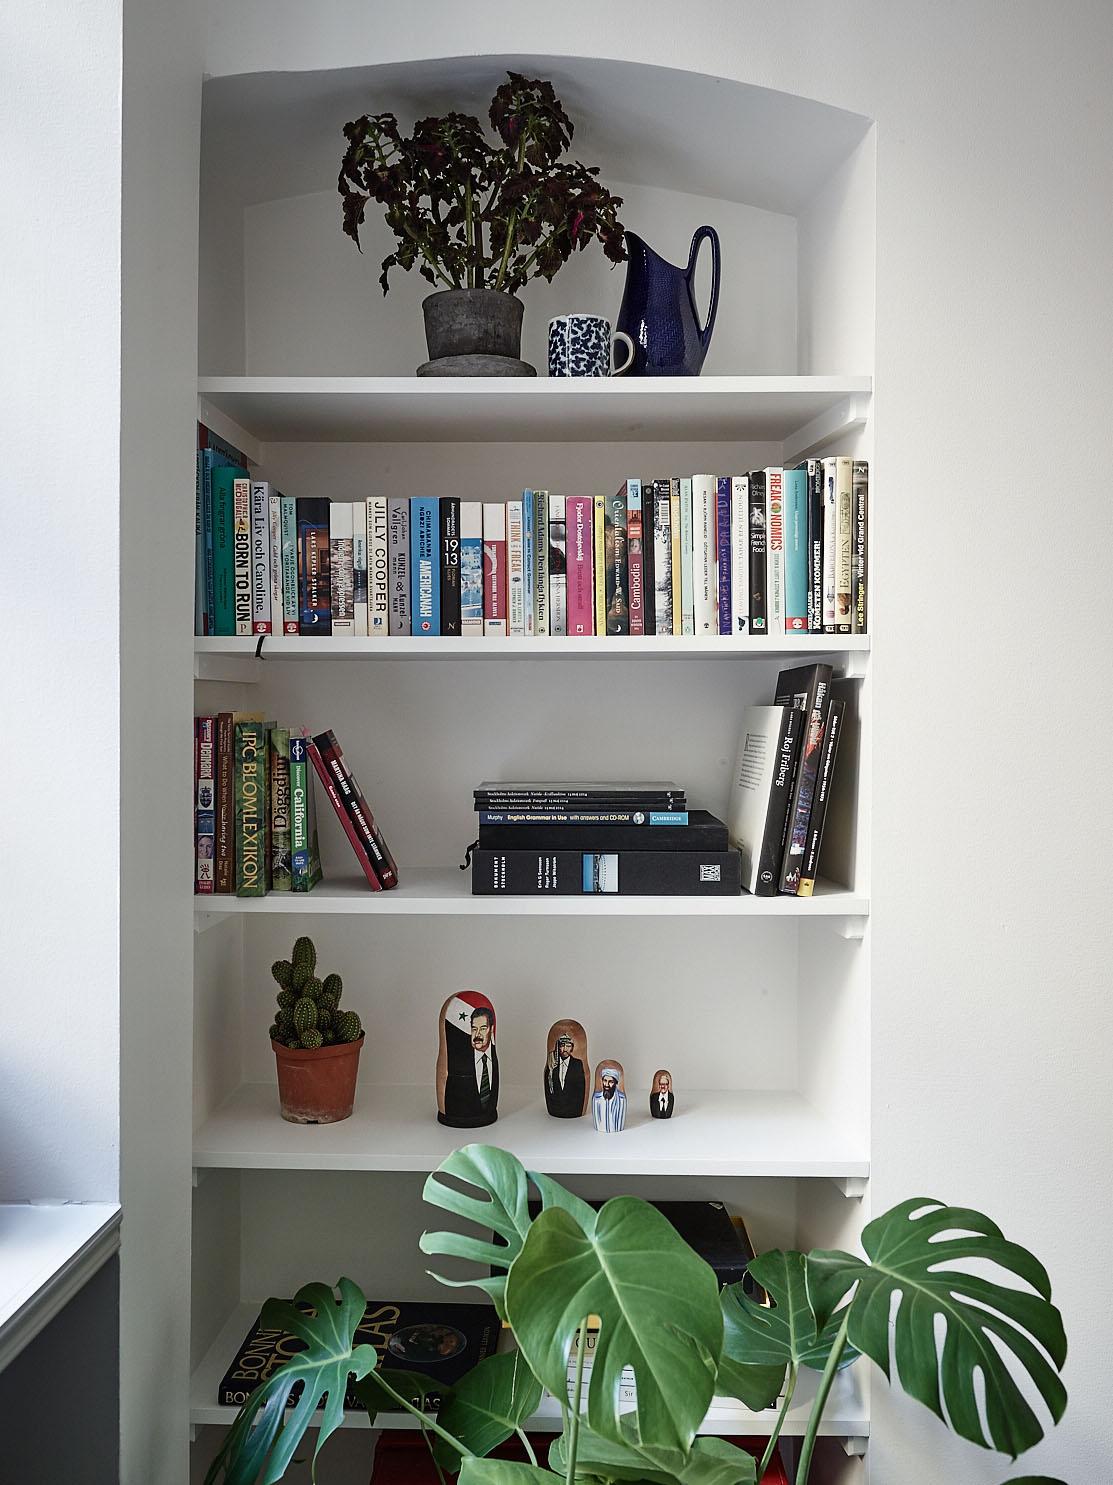 styling details on the shelf